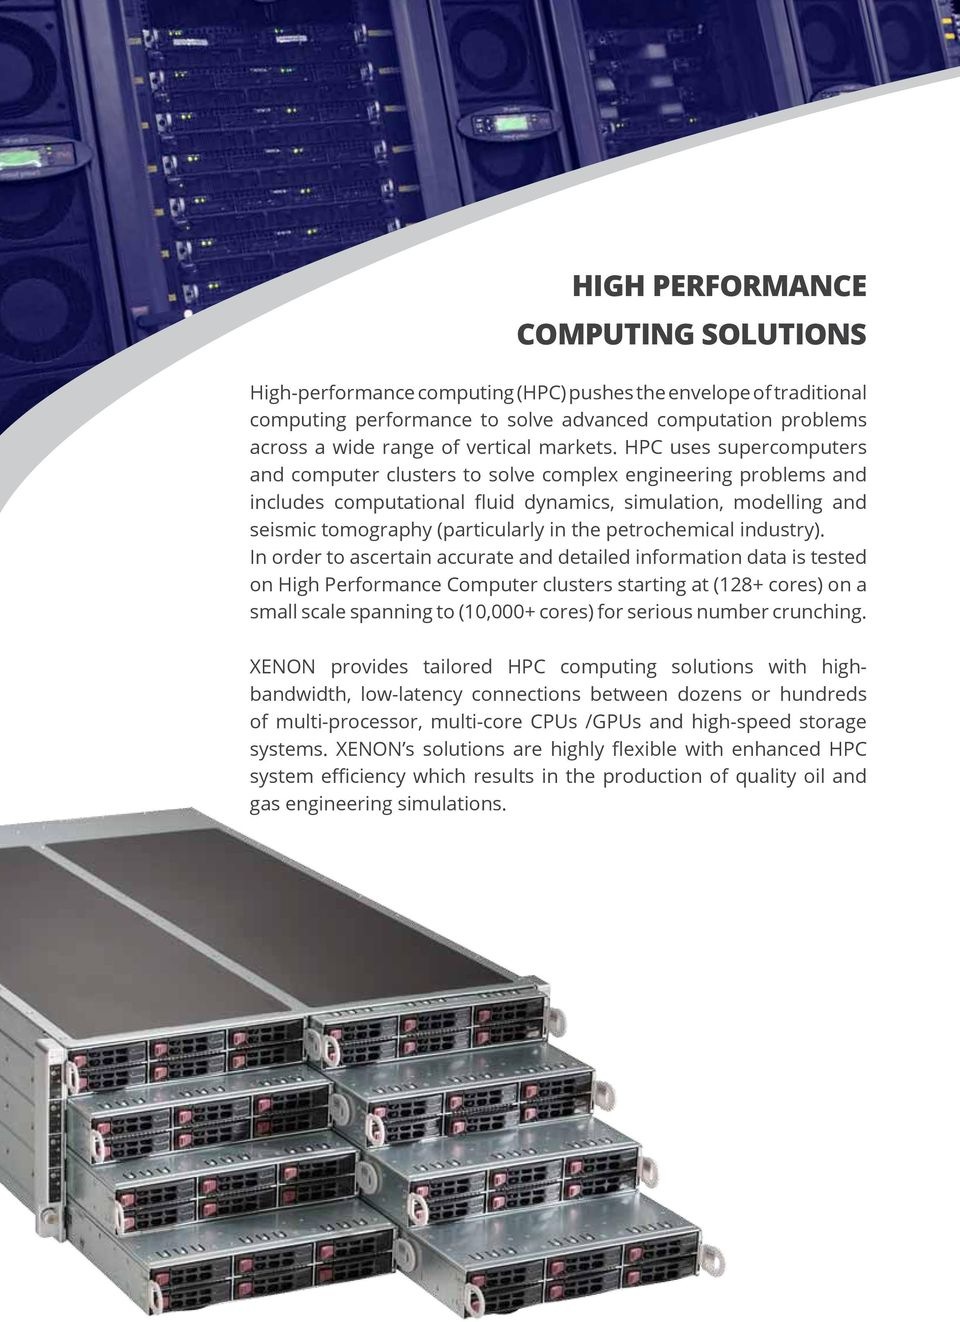 HPC uses supercomputers and computer clusters to solve complex engineering problems and includes computational fluid dynamics, simulation, modelling and seismic tomography (particularly in the